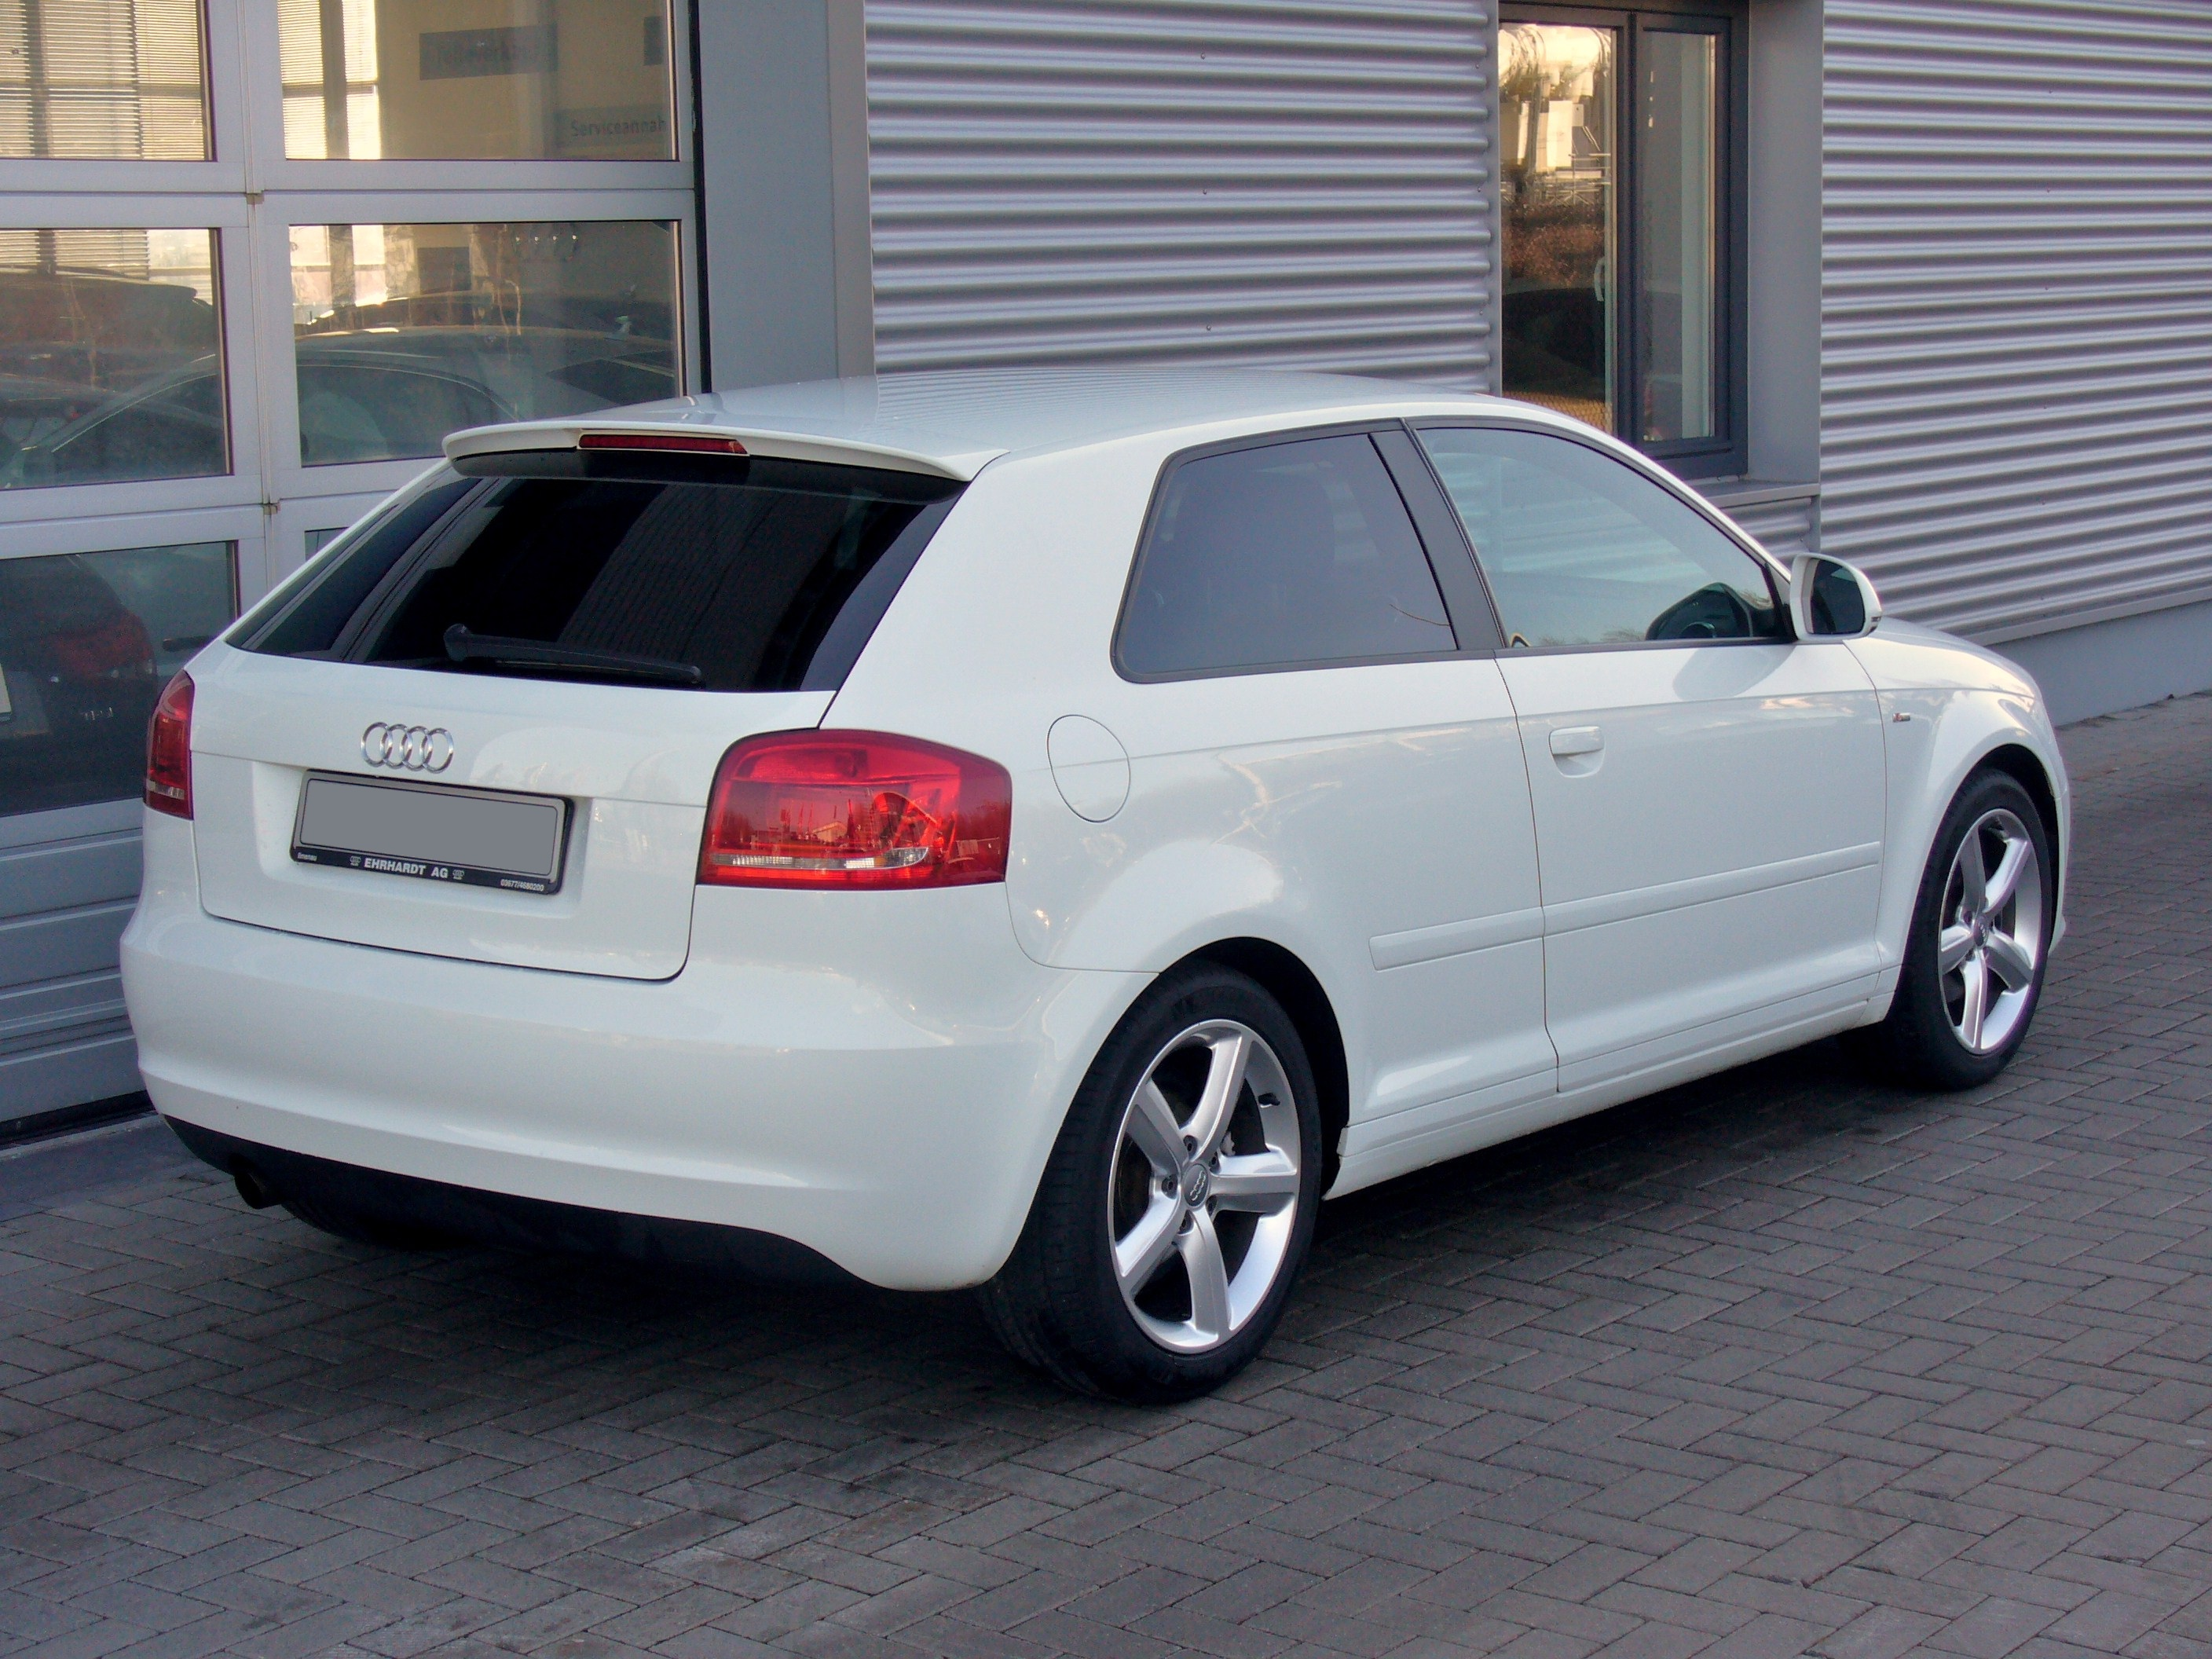 File Audi A3 8p 2 Facelift S Line 1 2 Tfsi Ibisweiss Heck Jpg